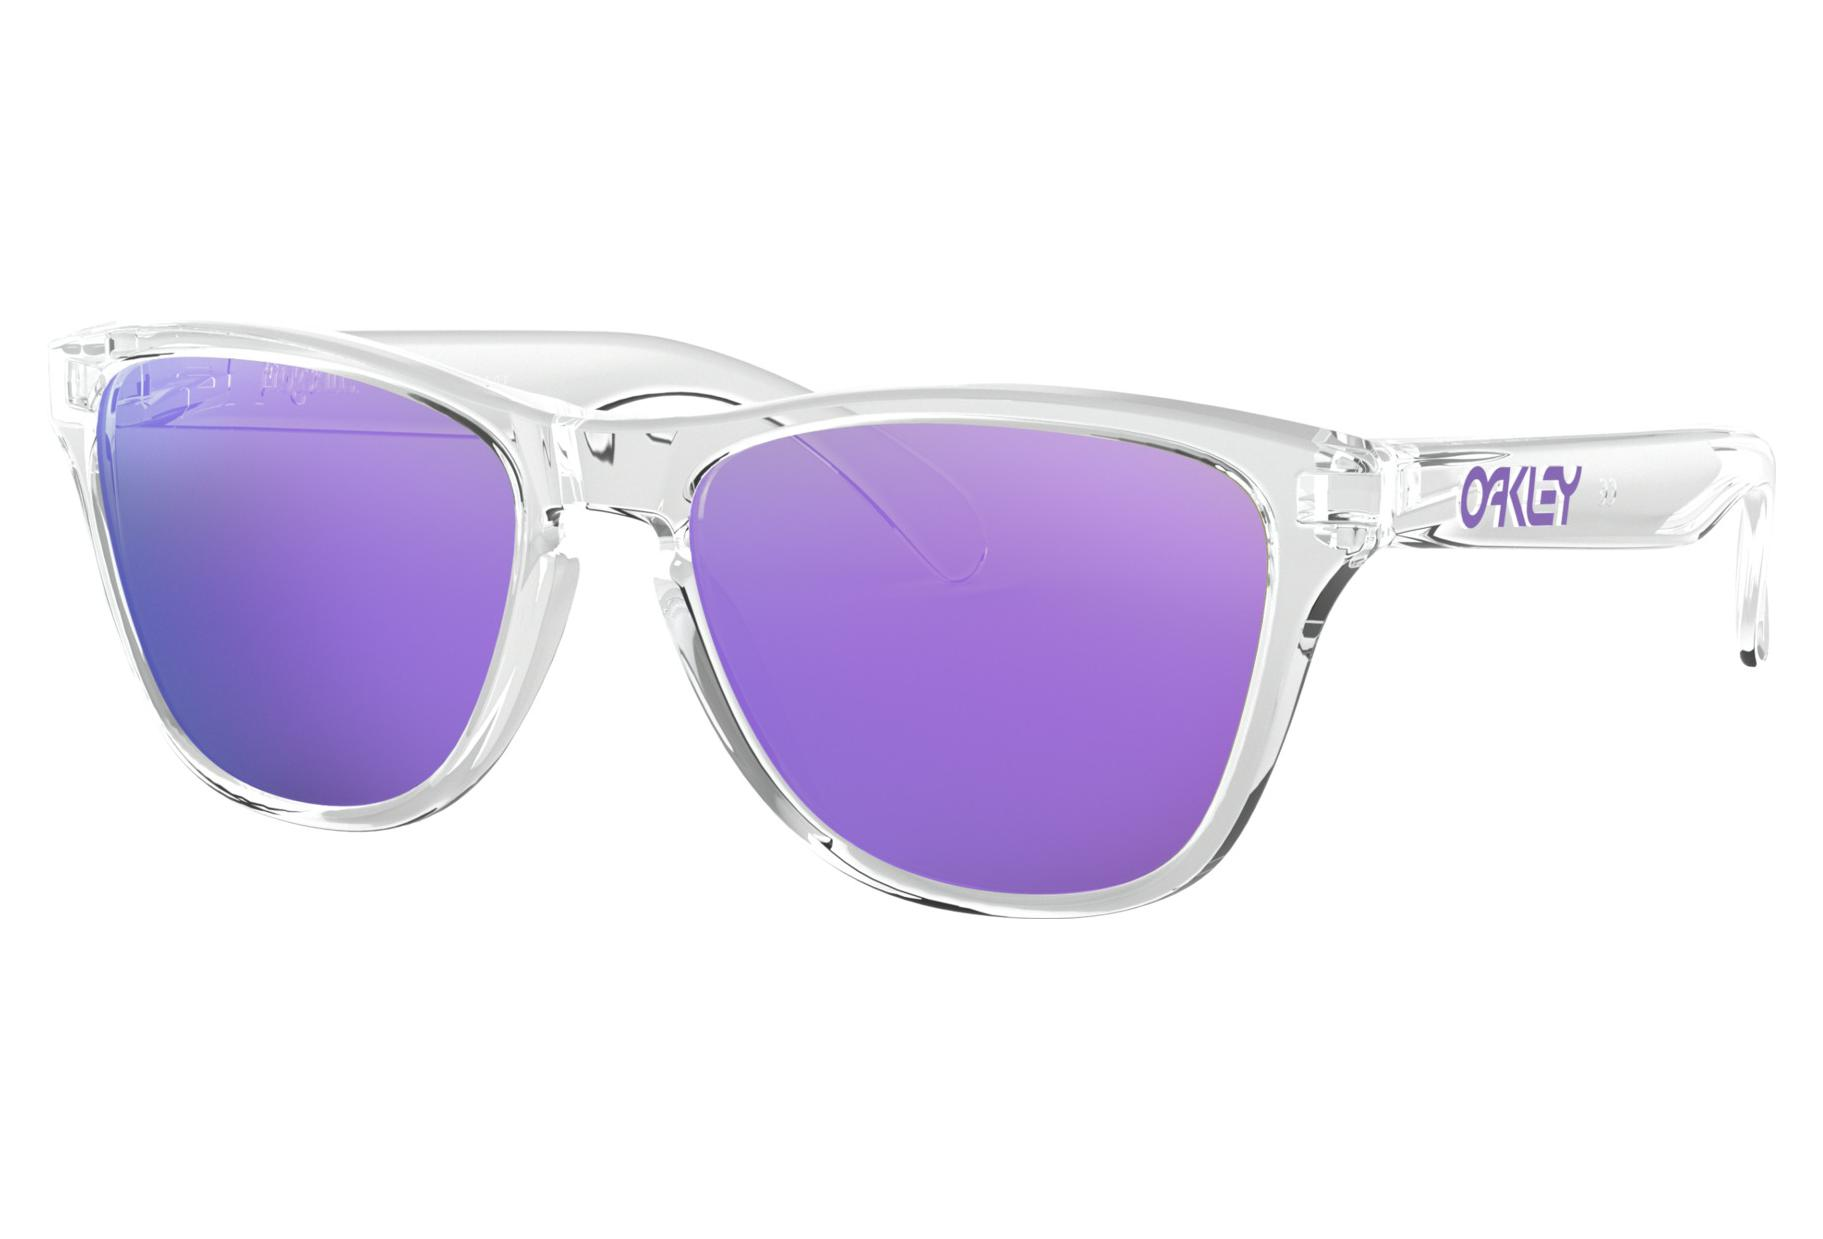 796bcac3b2 Oakley Sunglasses Frogskins XS Youth Fit Polished Clear   Violet Iridium    Ref. OJ9006-0353